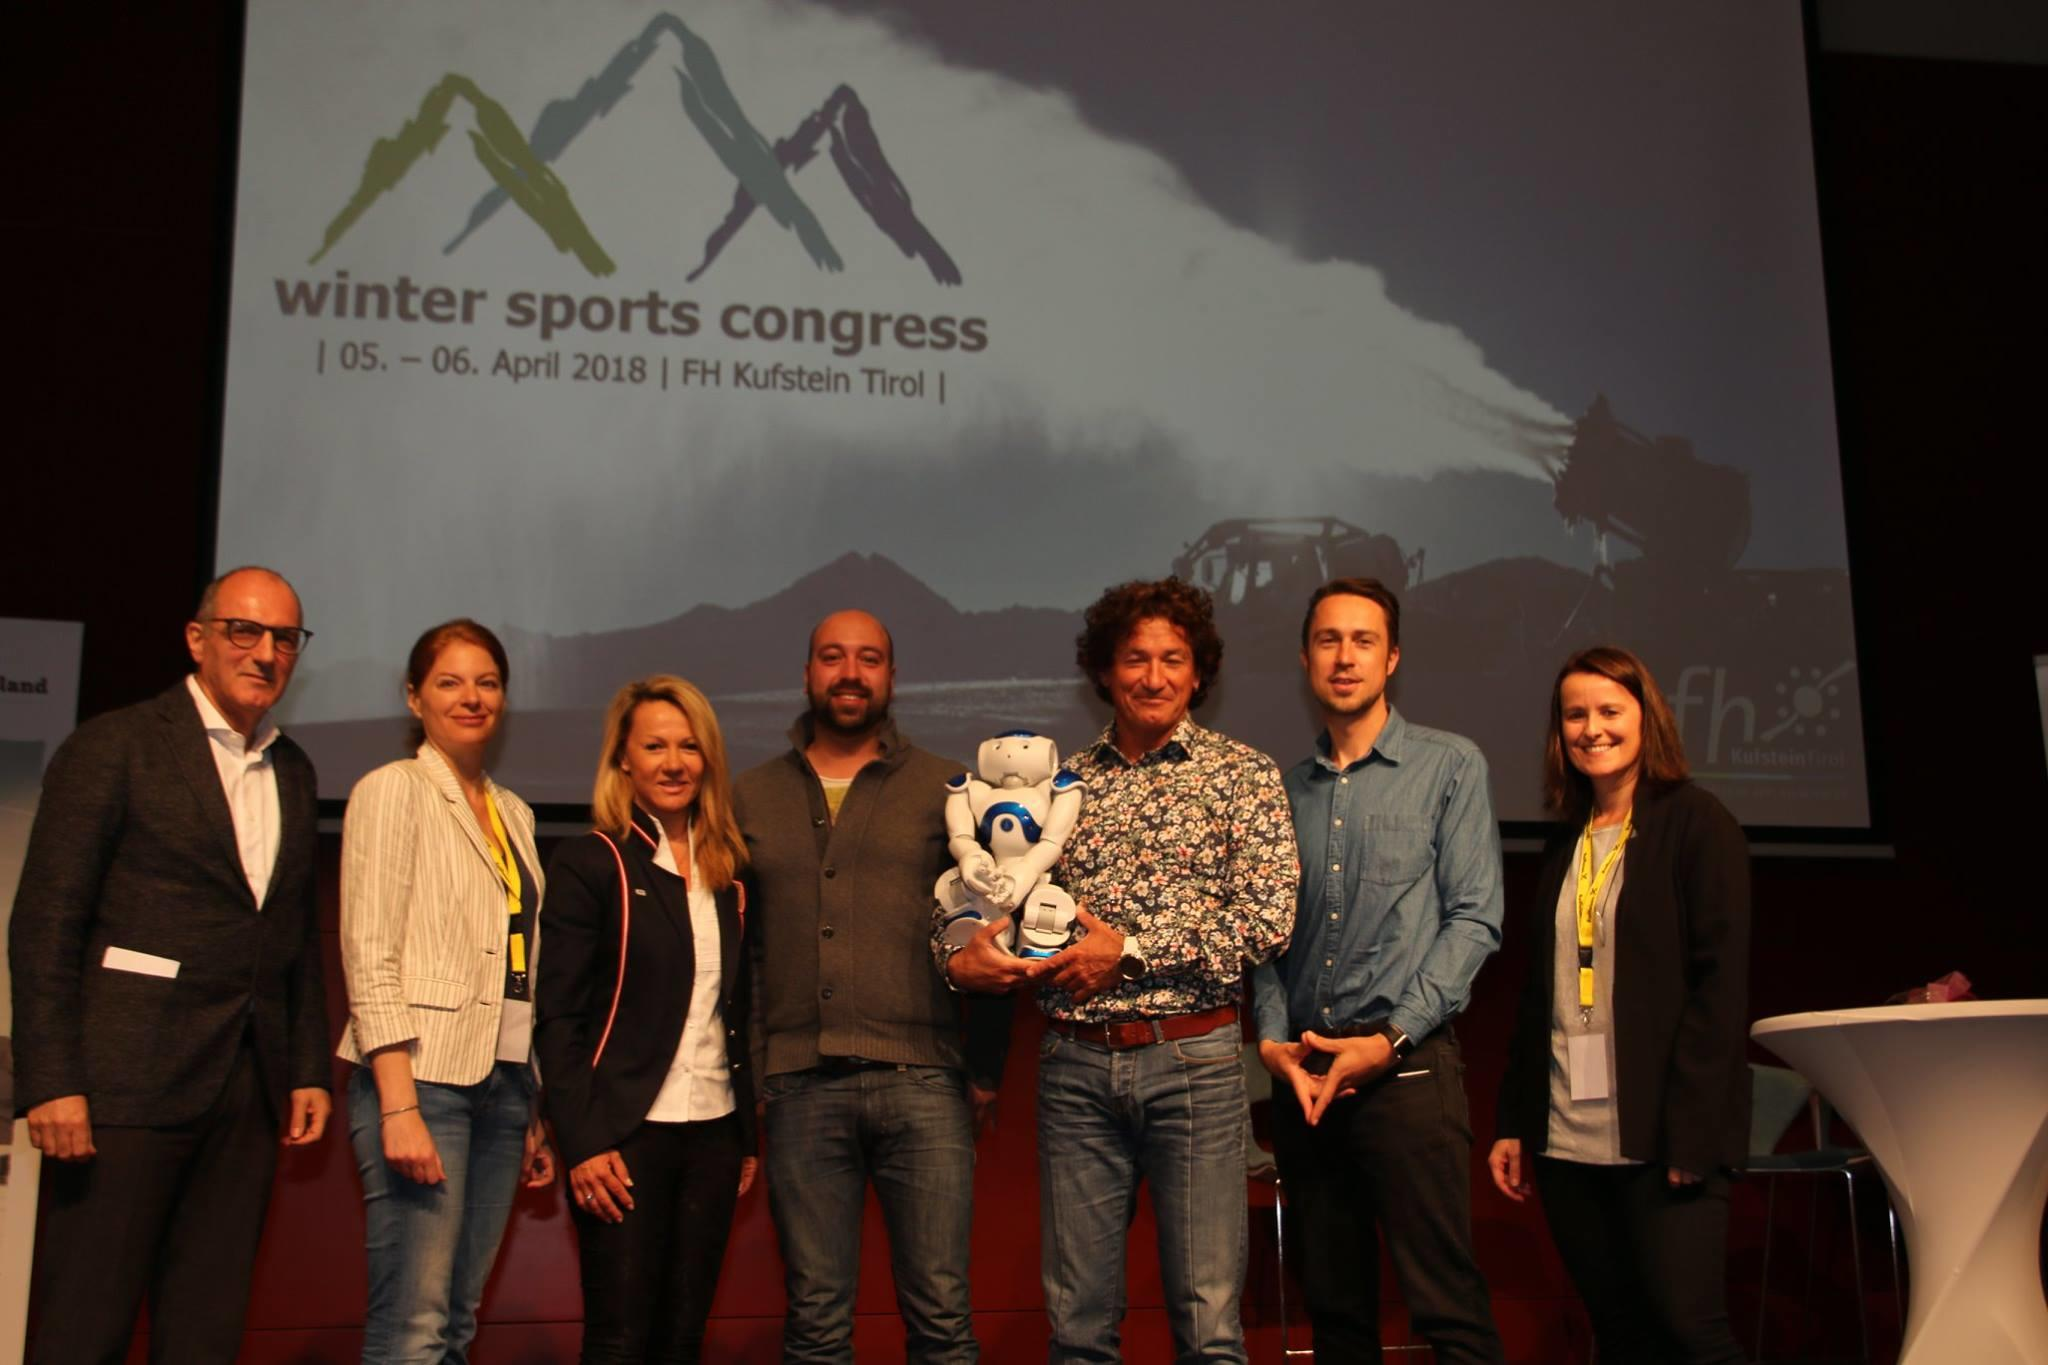 Winter Sports Kongress Kufstein